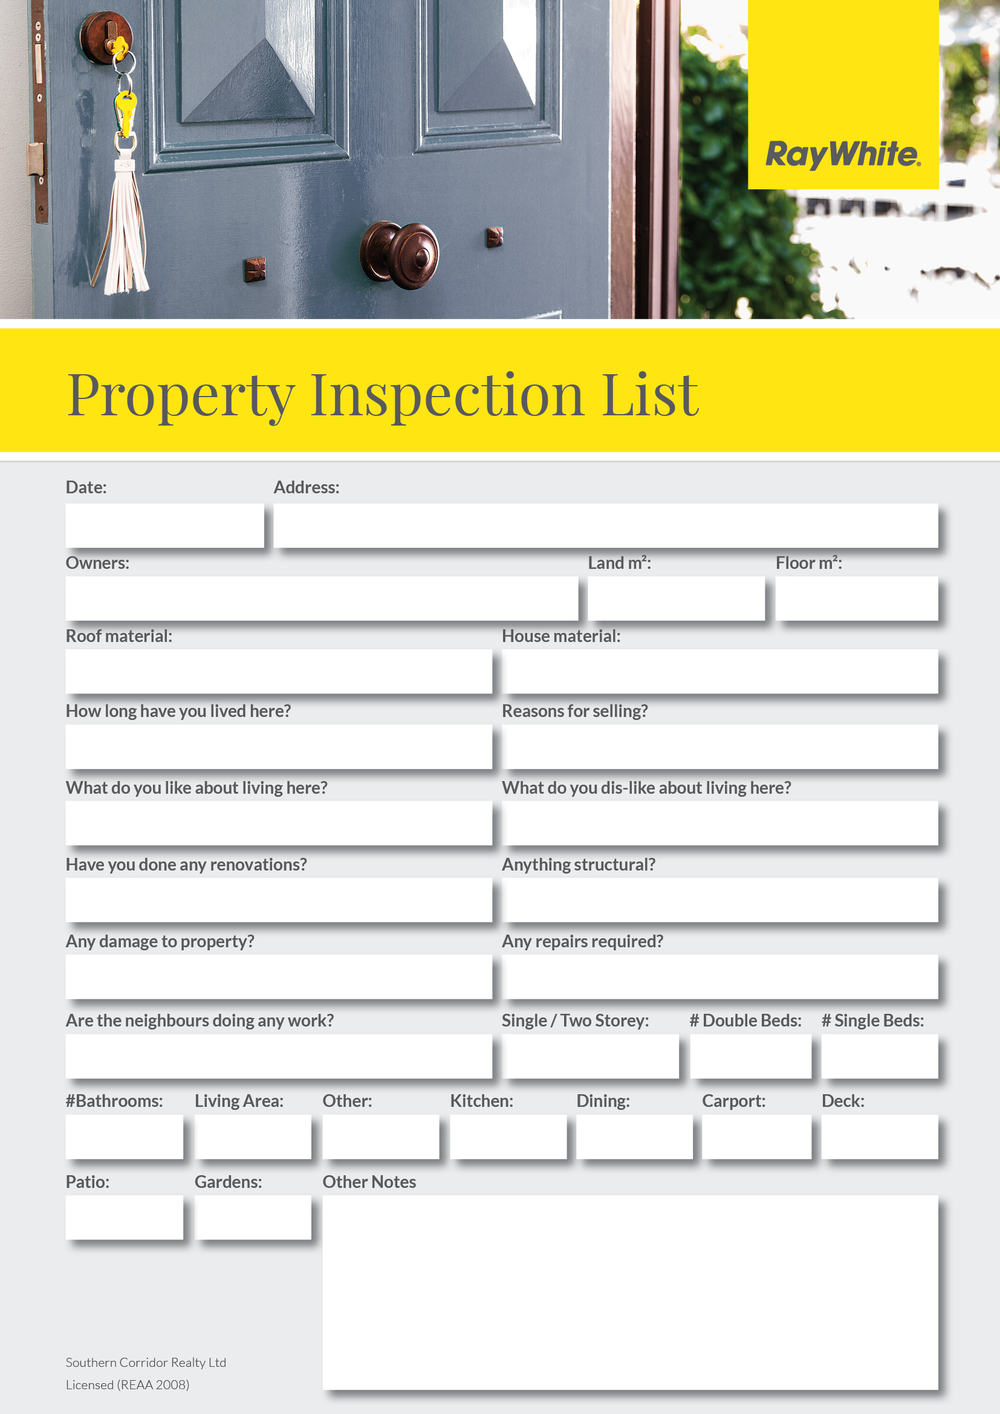 Property Inspection List